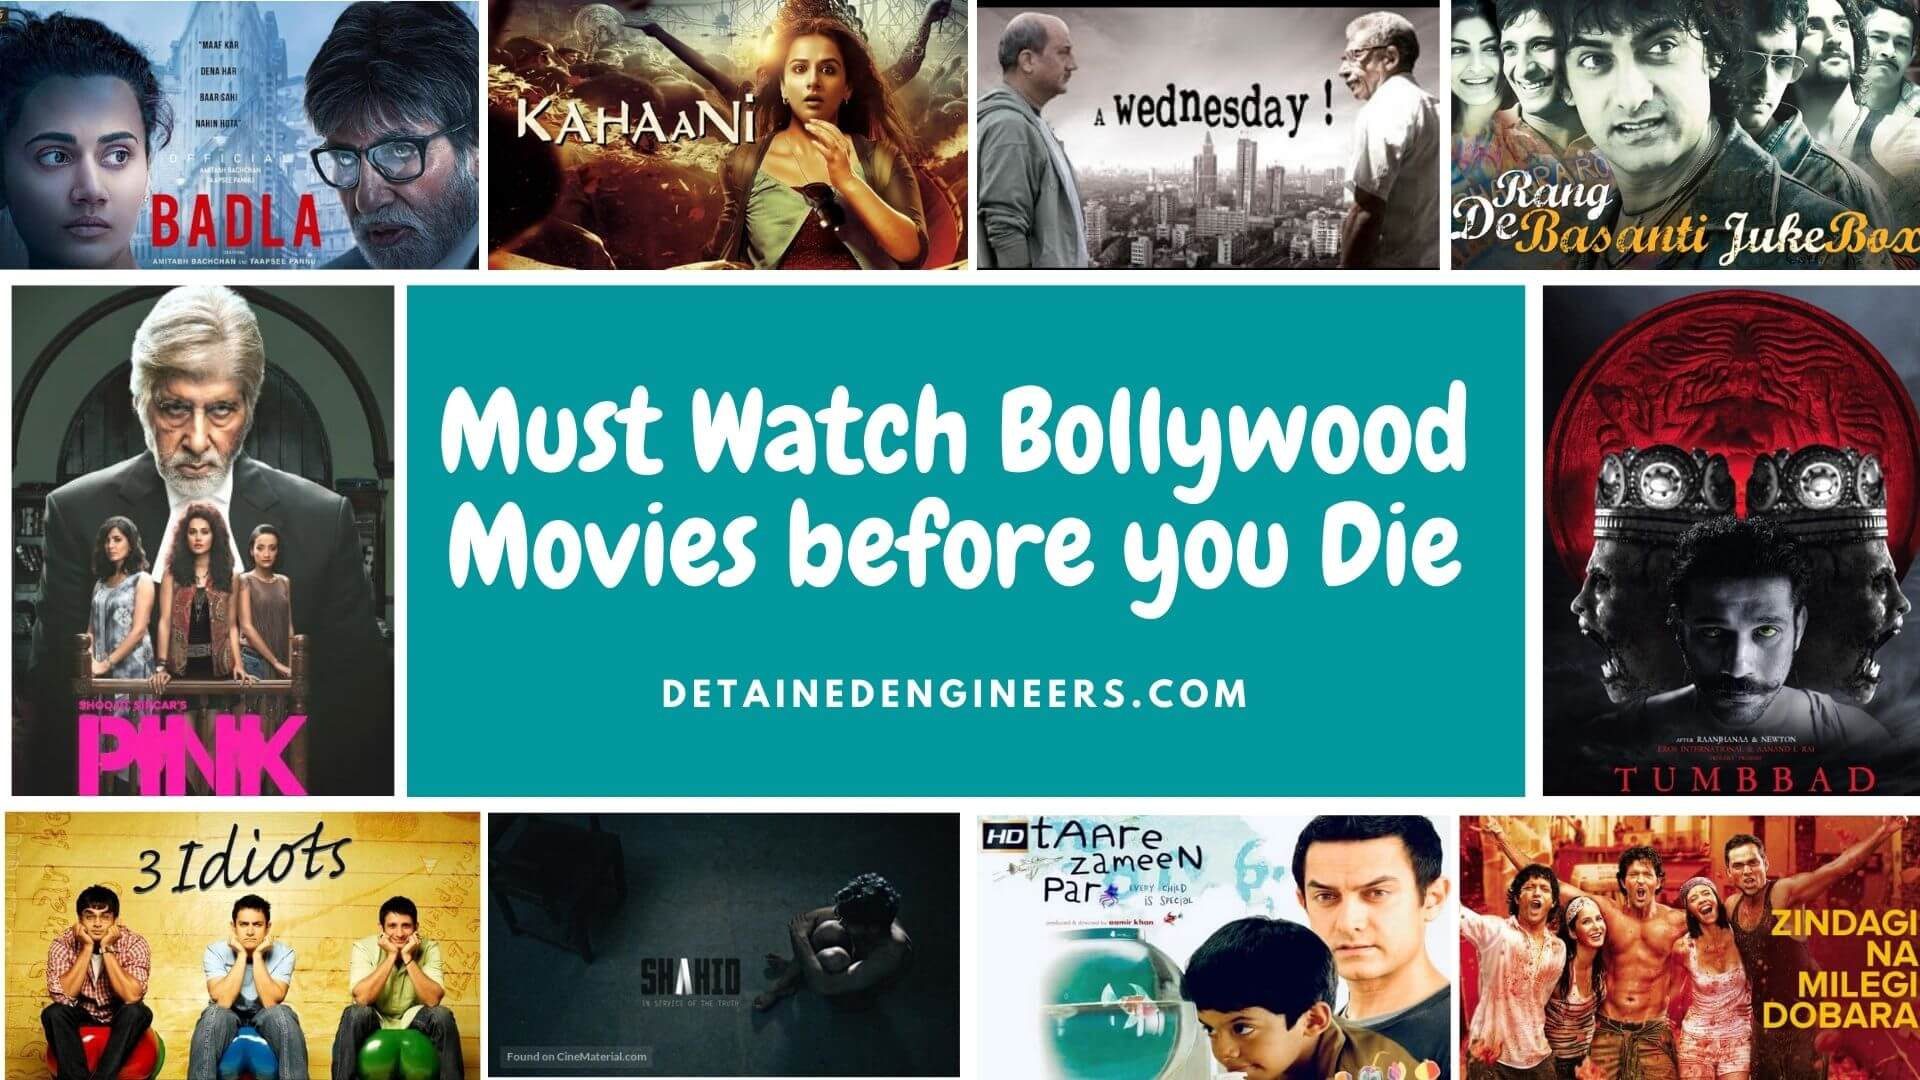 Must Watch Bollywood Movies before you Die